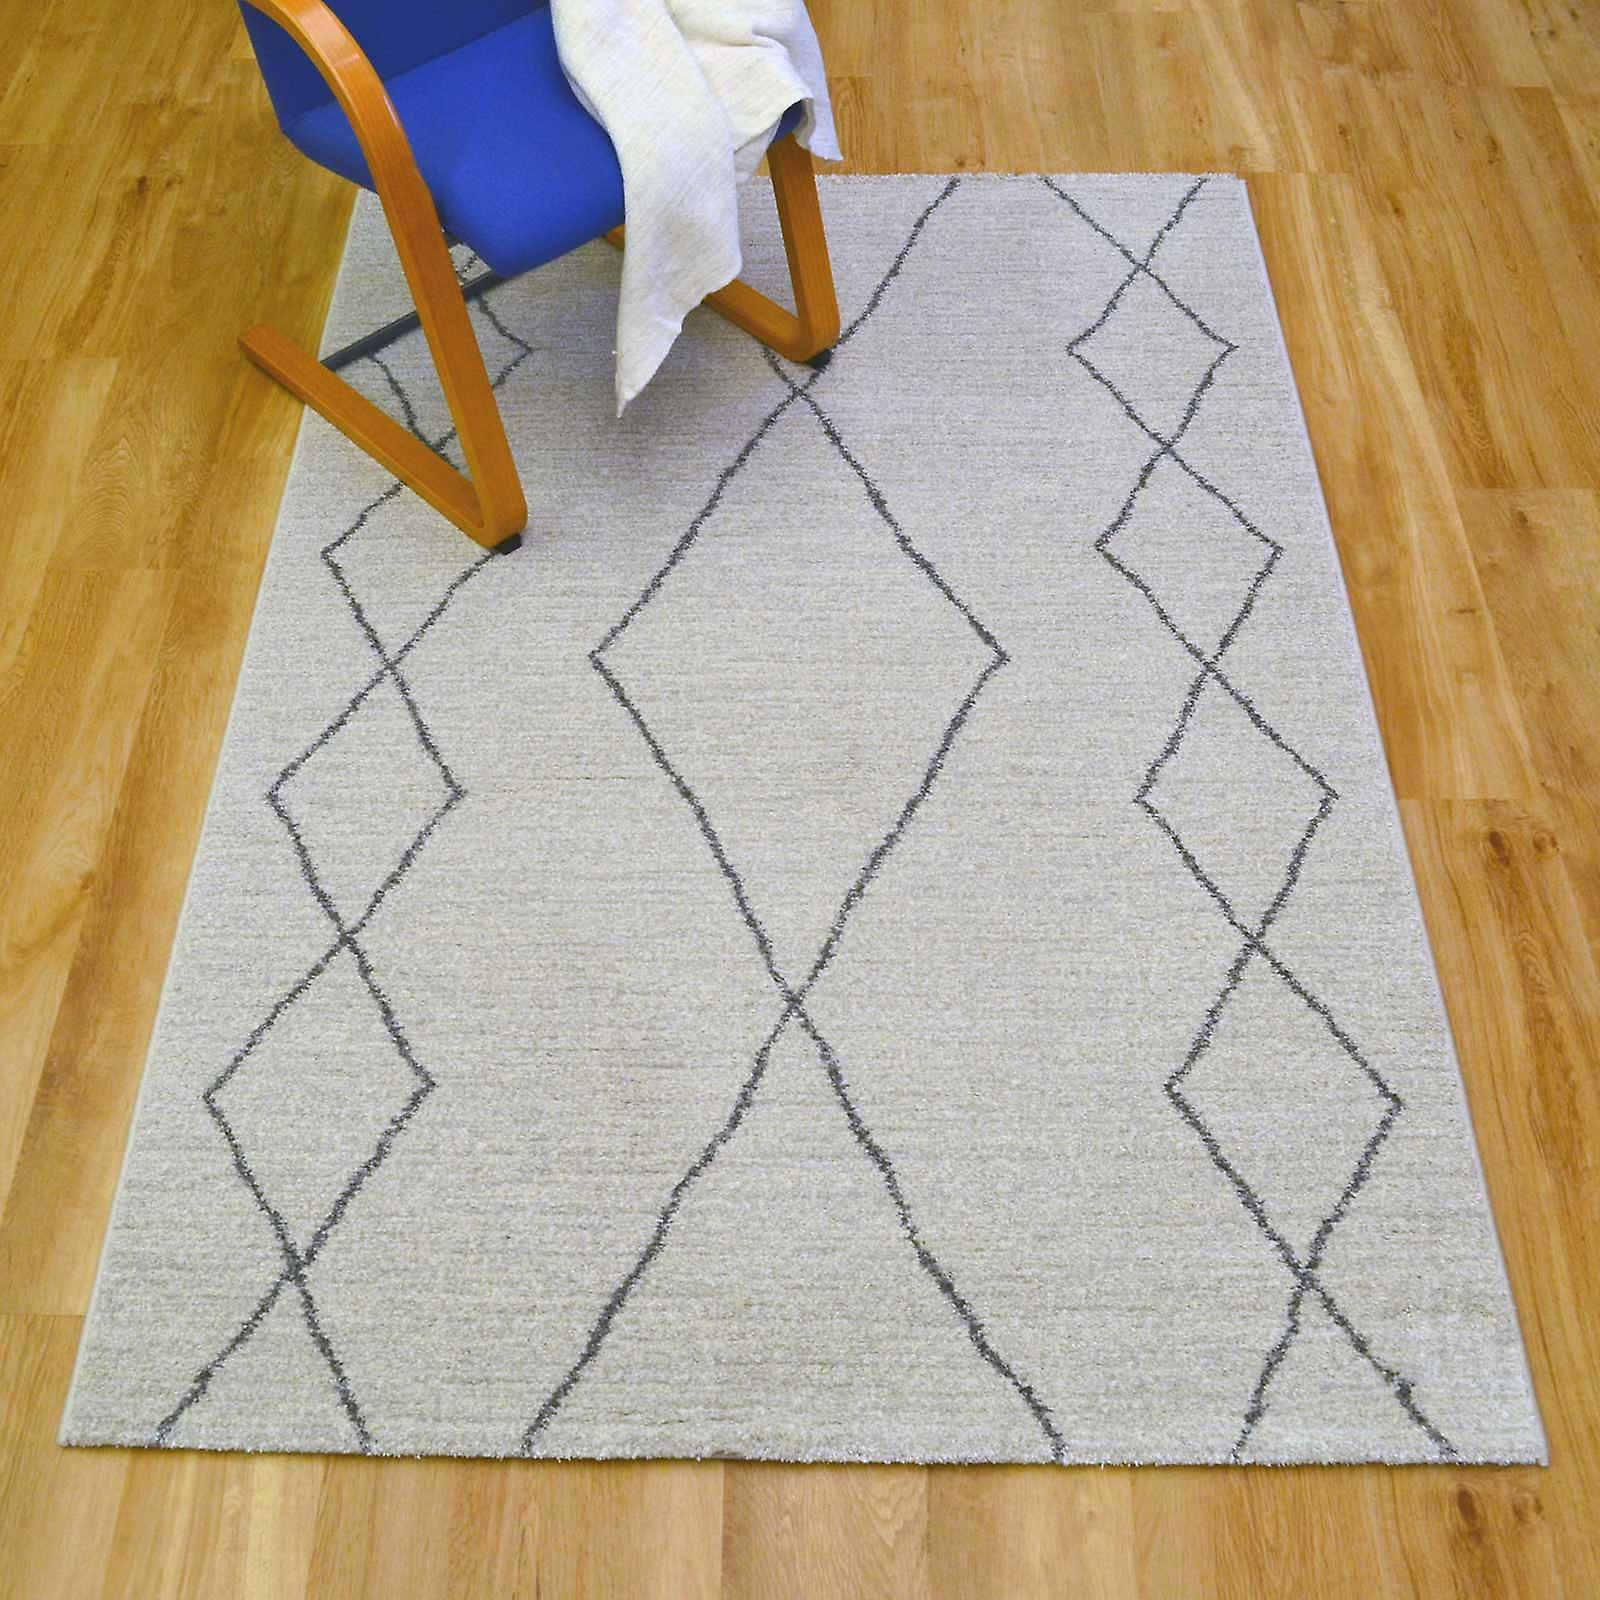 Skald Rugs 49007 4242 In gris And argent